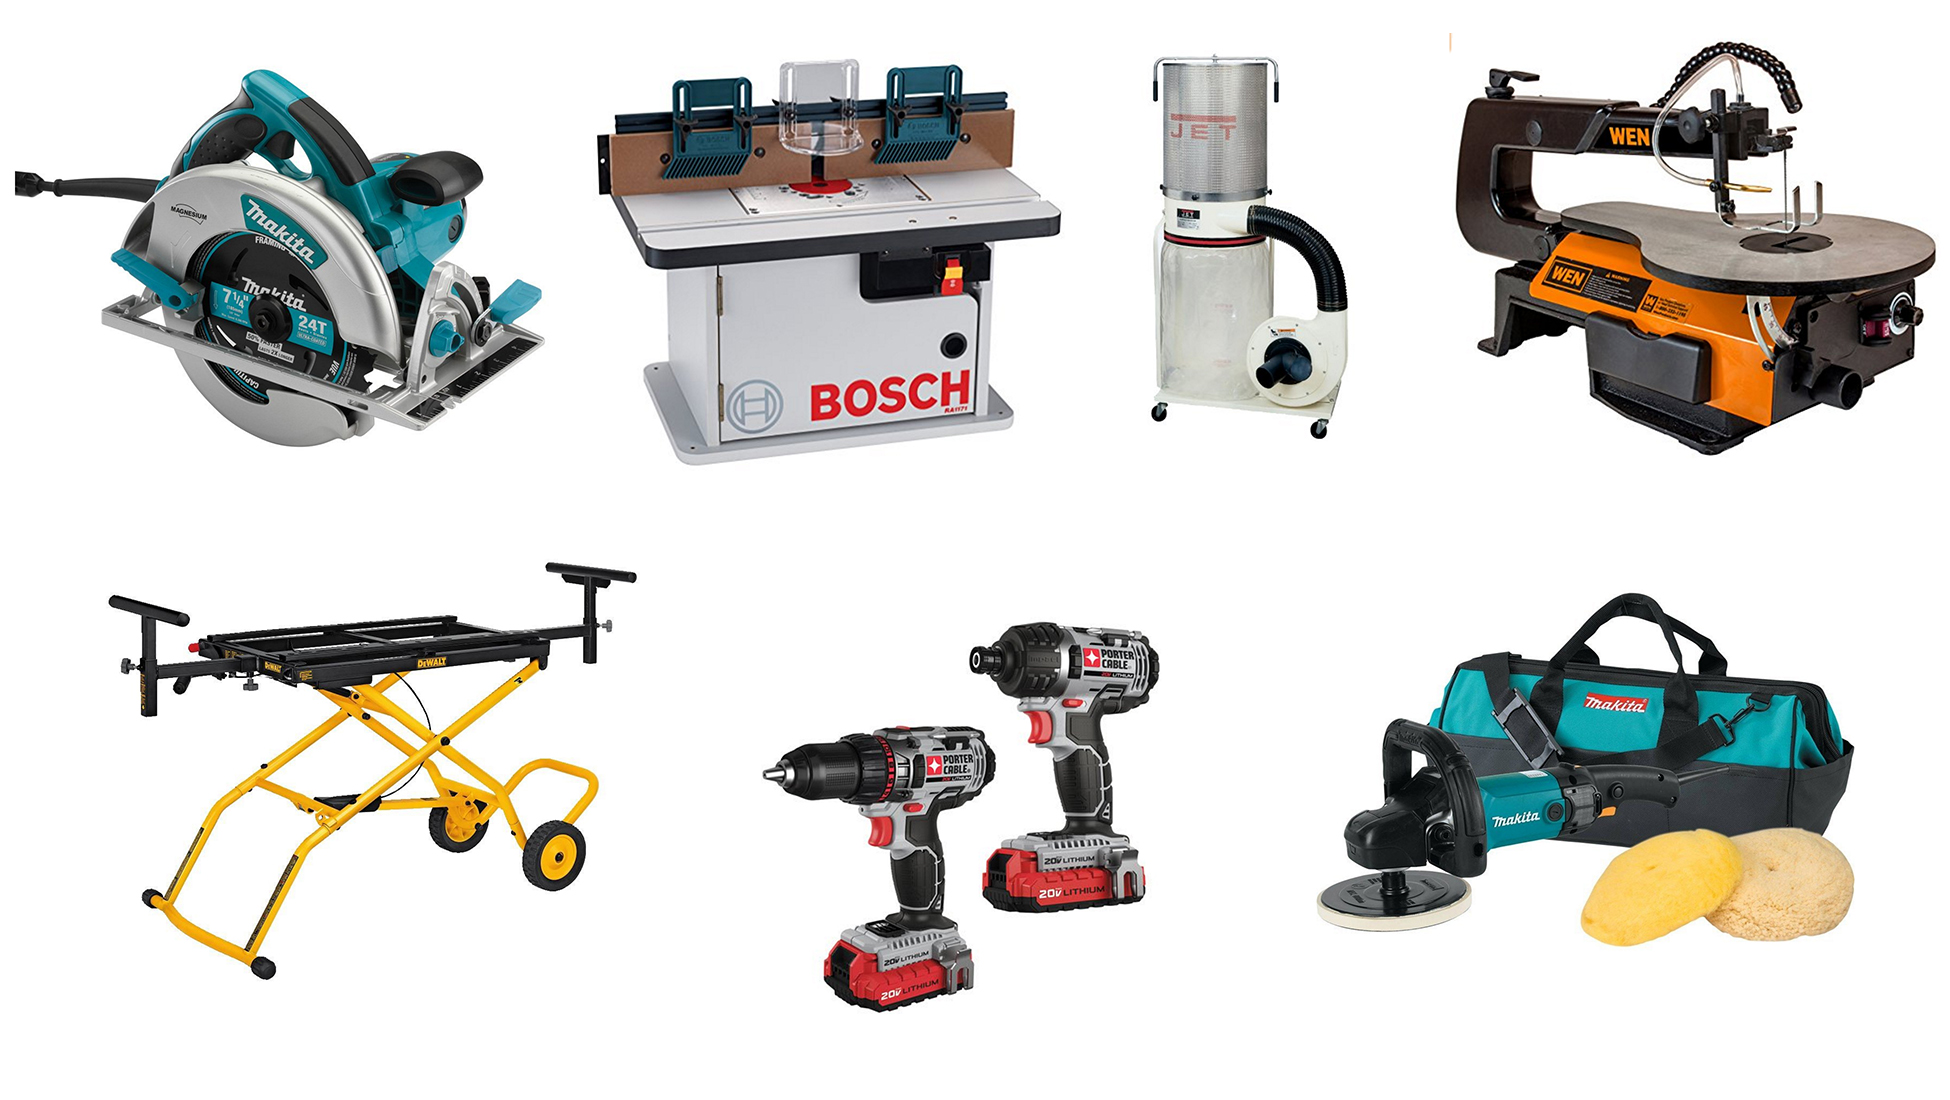 Amazon, cyber monday, cyber monday sales, cyber monday deals, tools, power tools, hand tools, woodworking tools